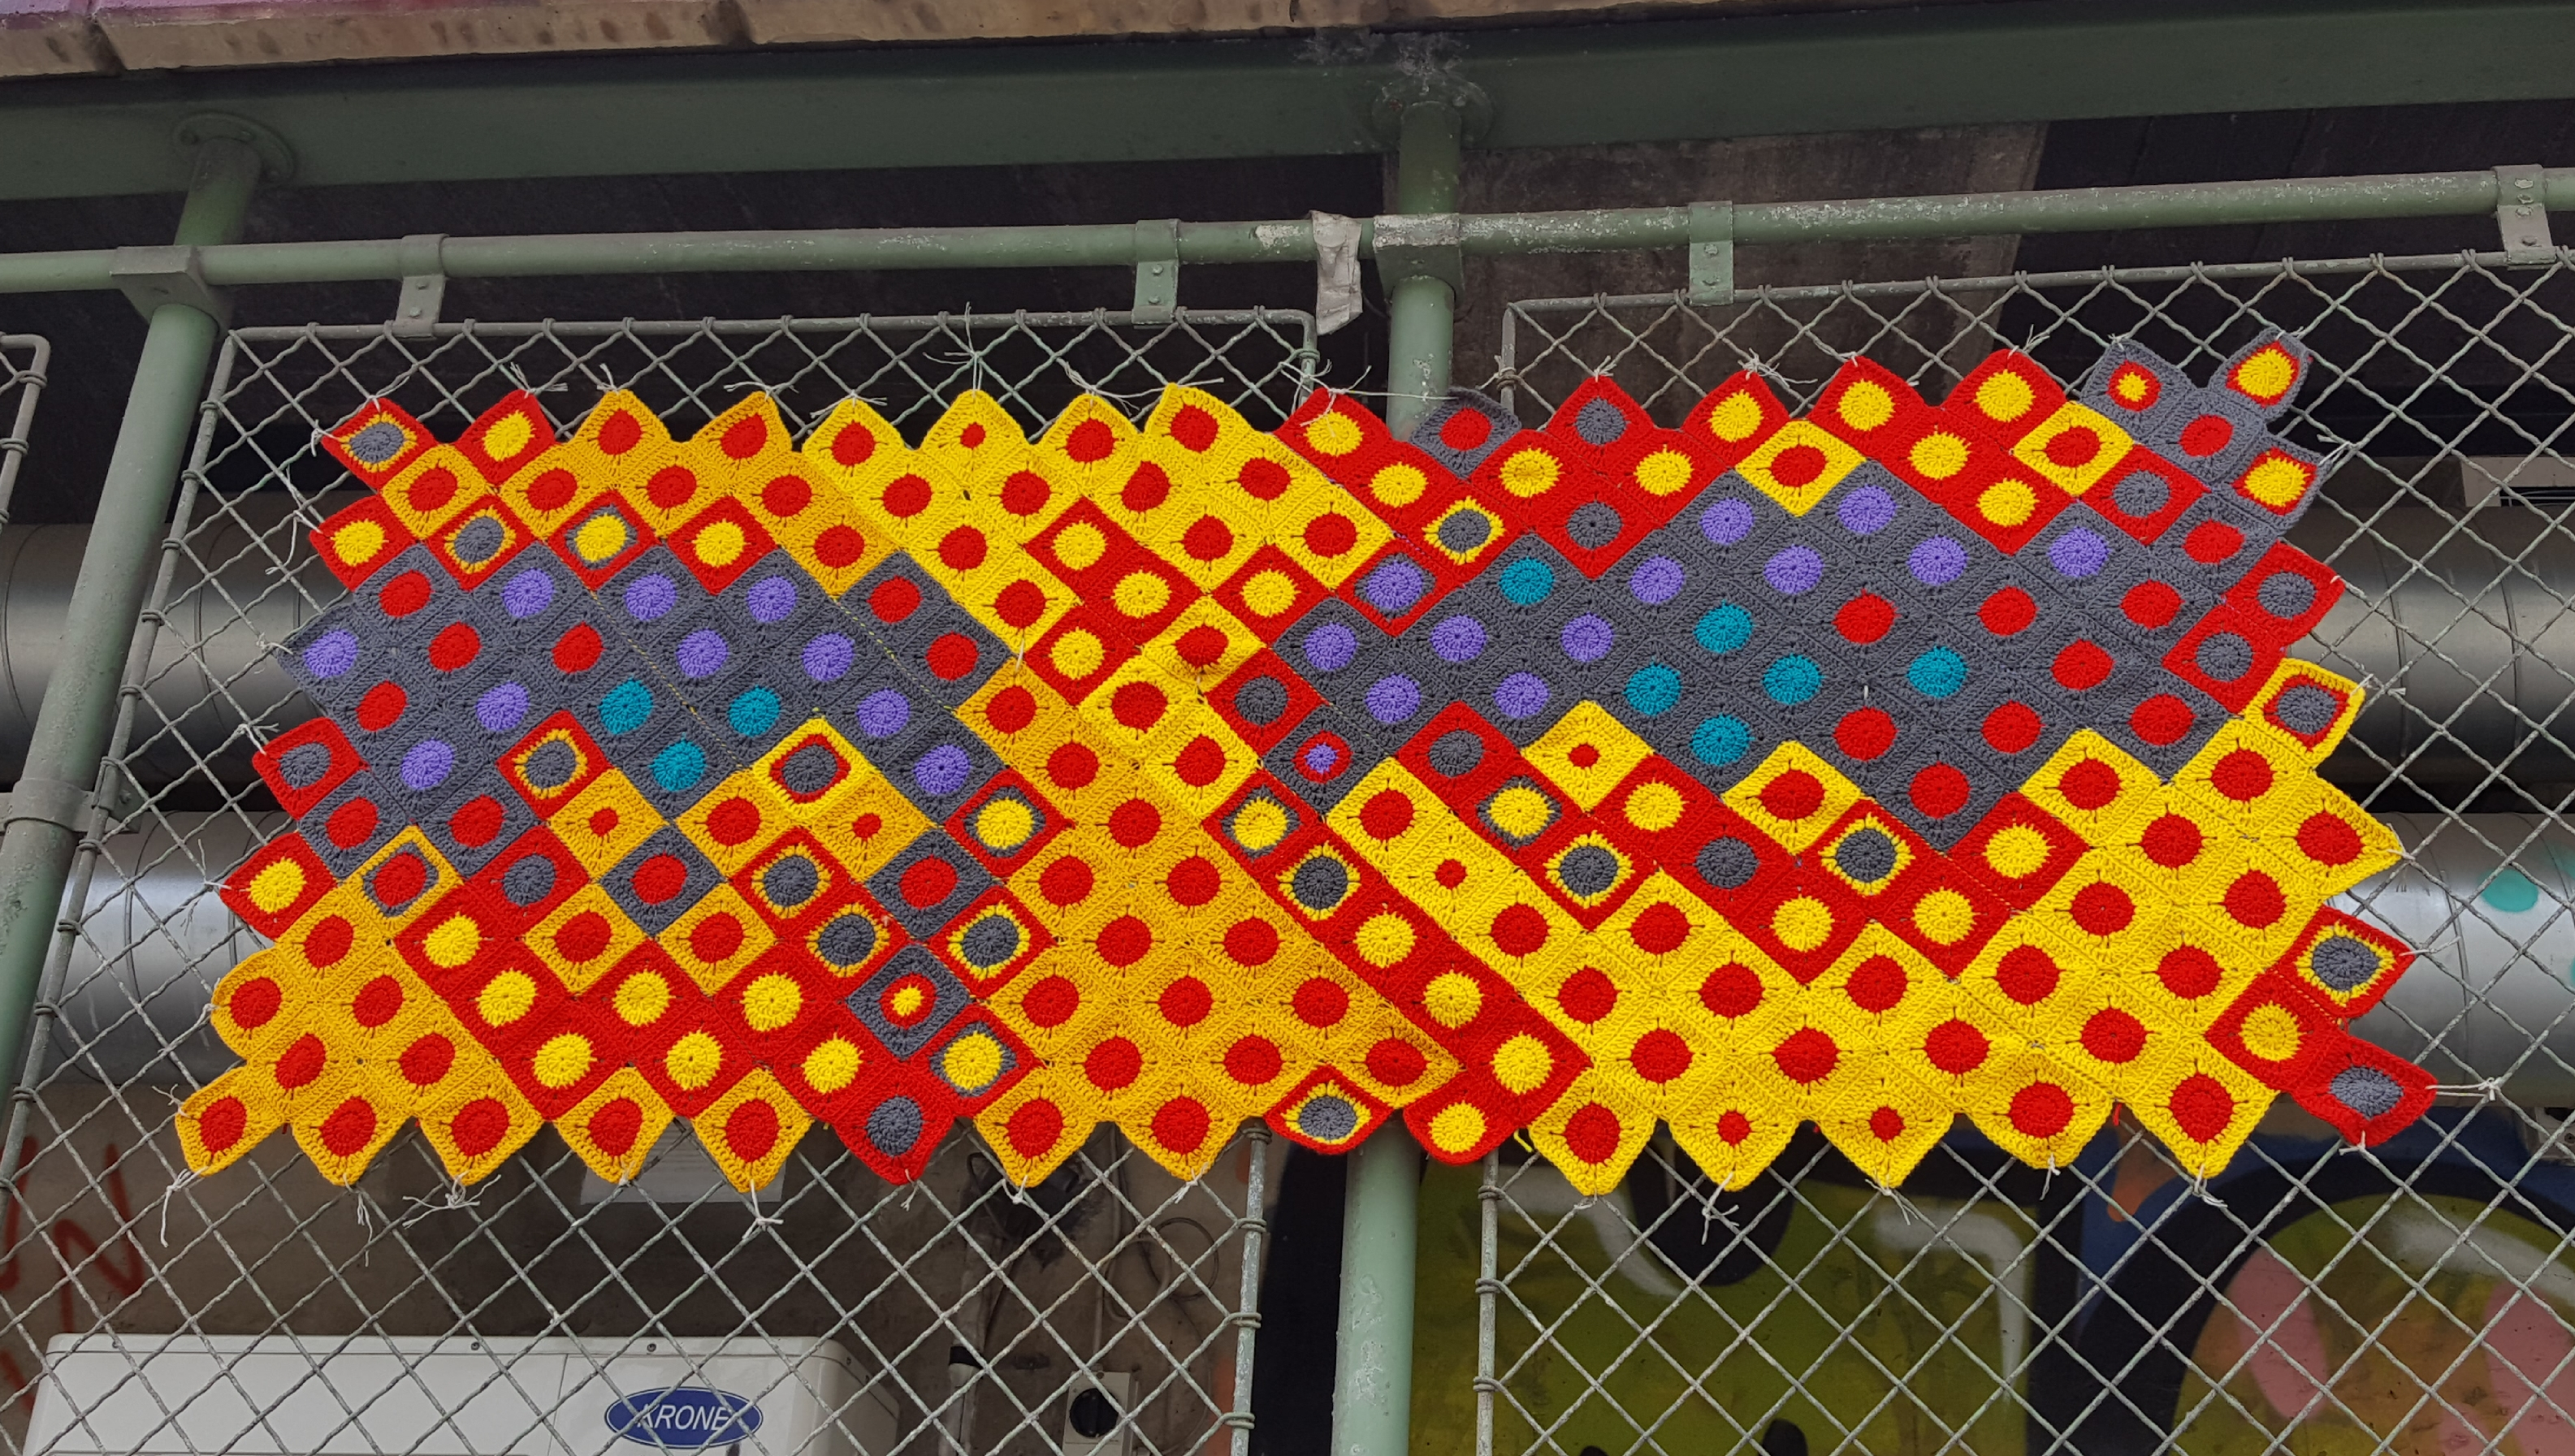 If you look at this Yarn Bomb photo from a distance you will see a face. Danube Canal. Photo by Dragonfly Leathum